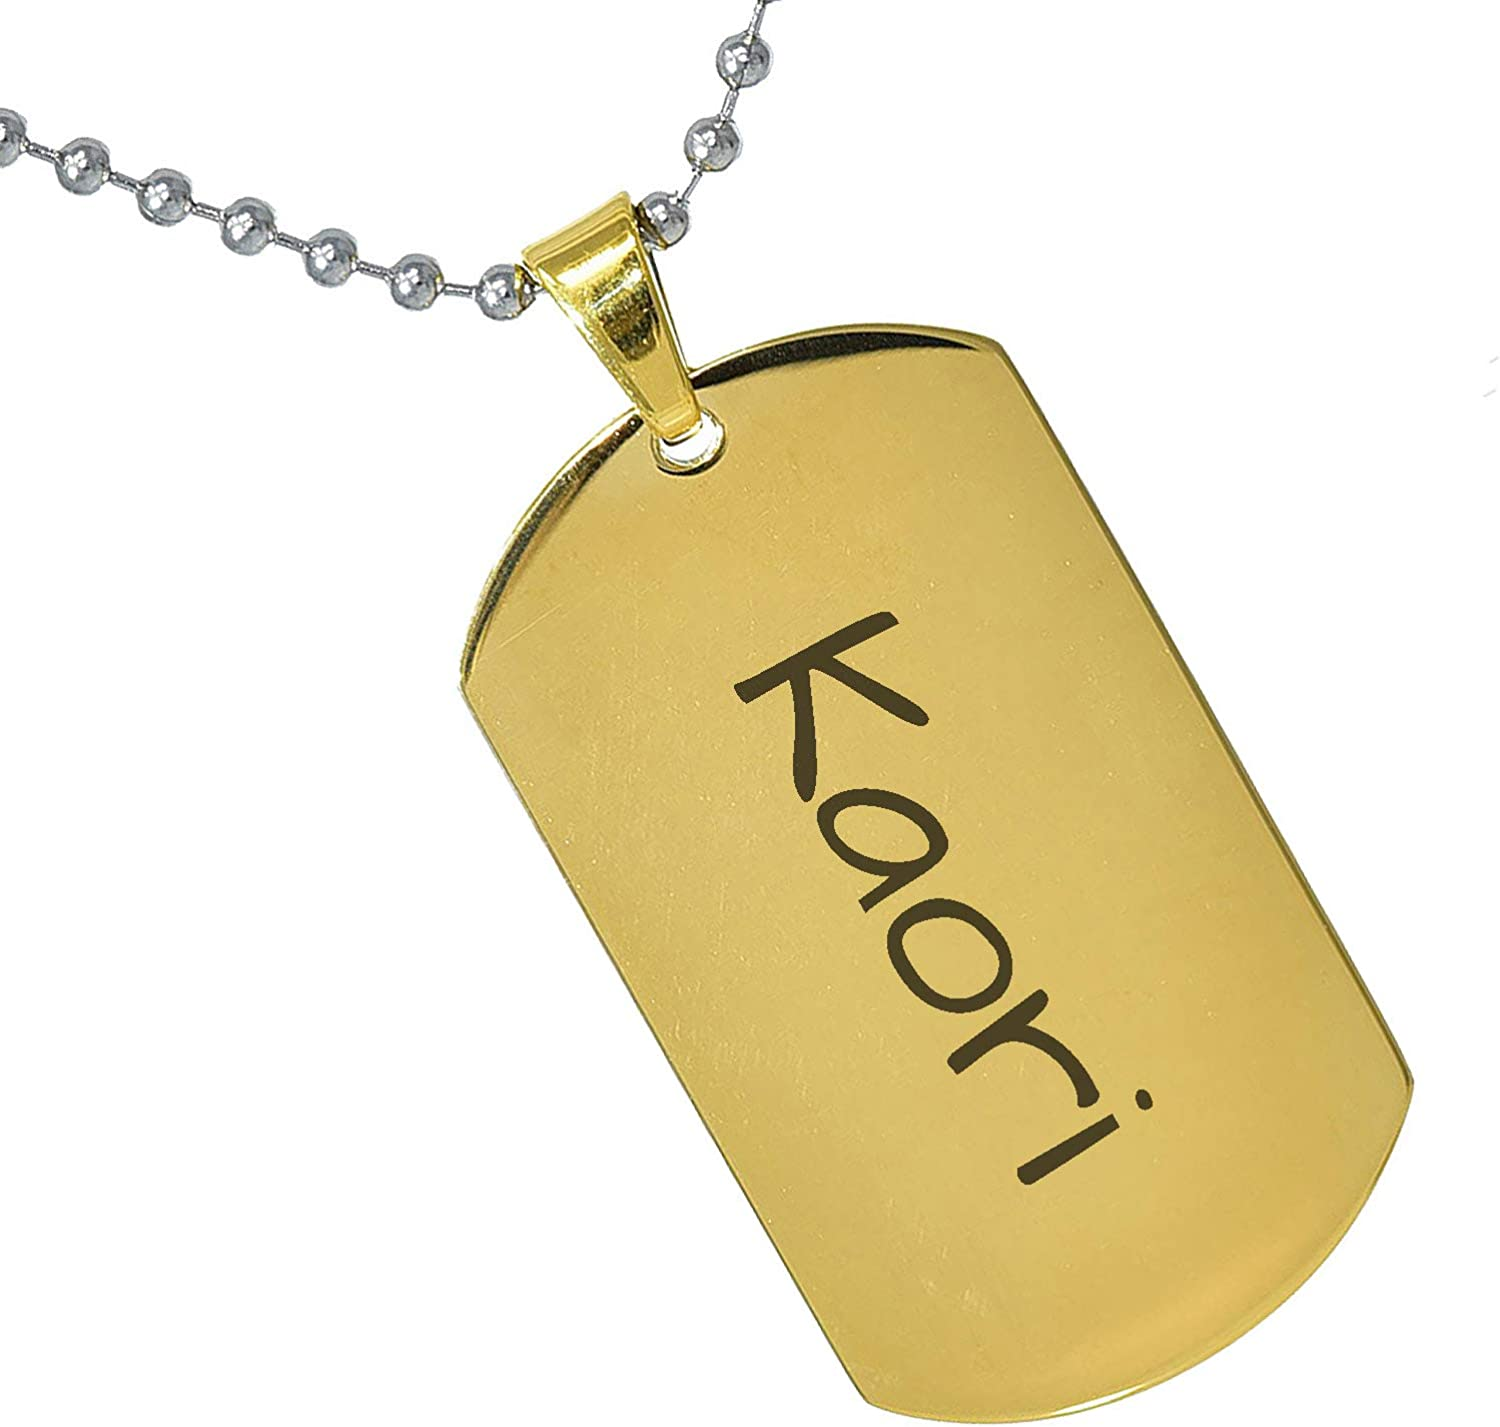 Stainless Steel Silver Gold Black Rose Gold Color Baby Name Kaori Engraved Personalized Gifts For Son Daughter Boyfriend Girlfriend Initial Customizable Pendant Necklace Dog Tags 24 Ball Chain